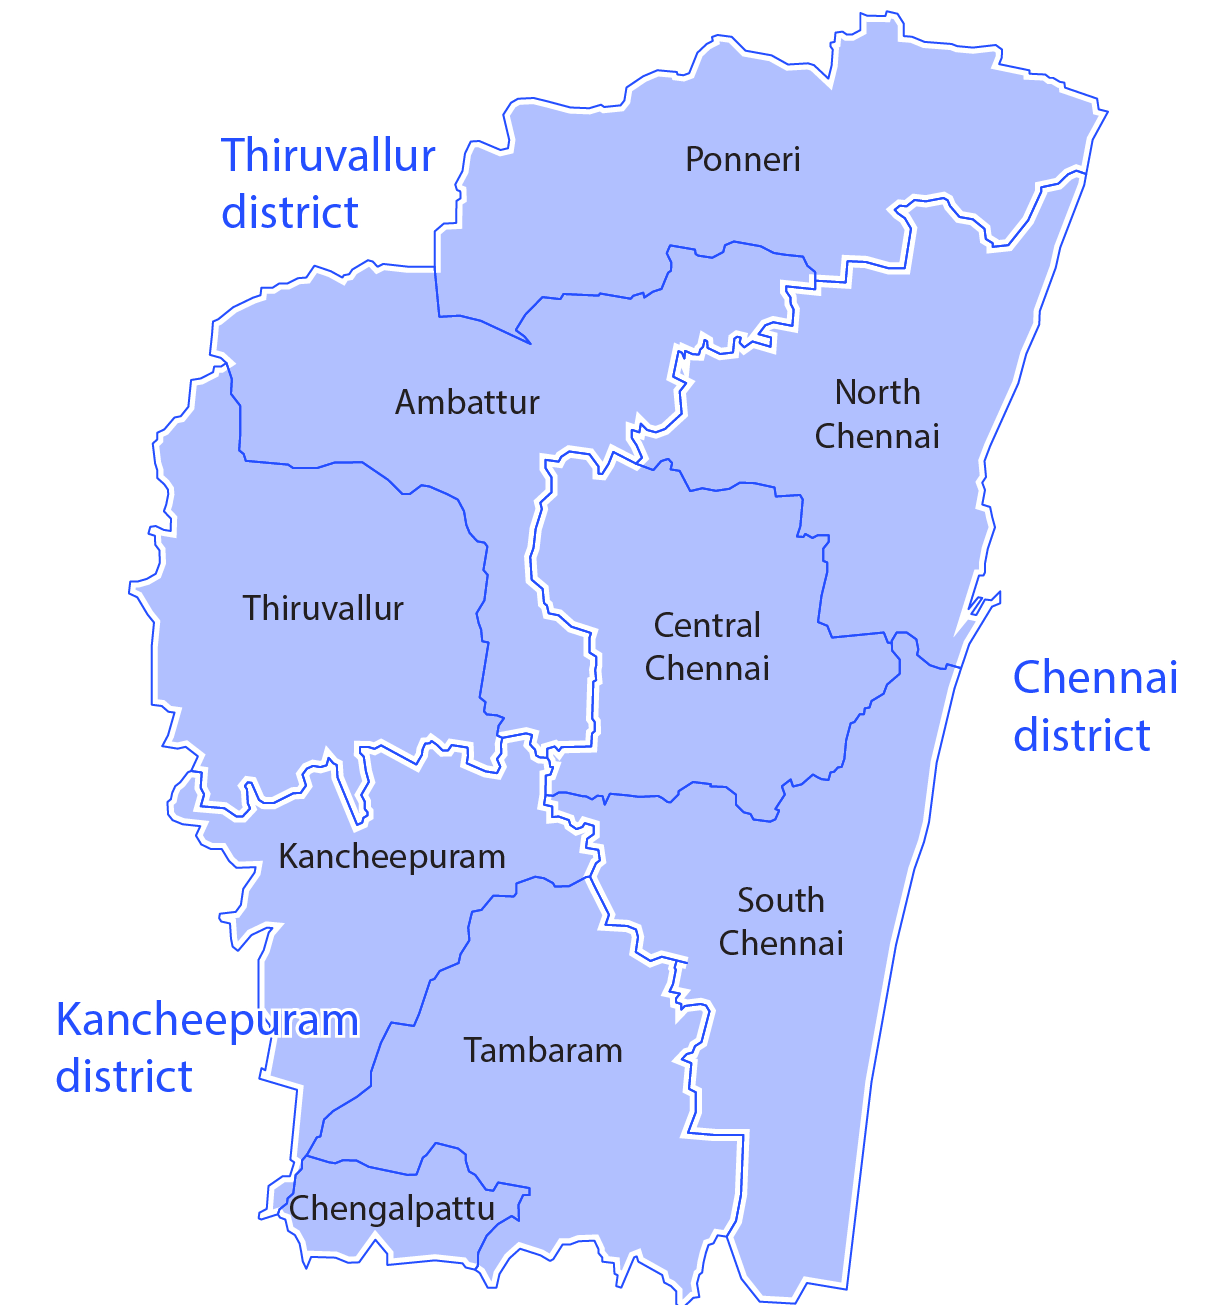 Speculation on Property in Chennai: Location Chrompet